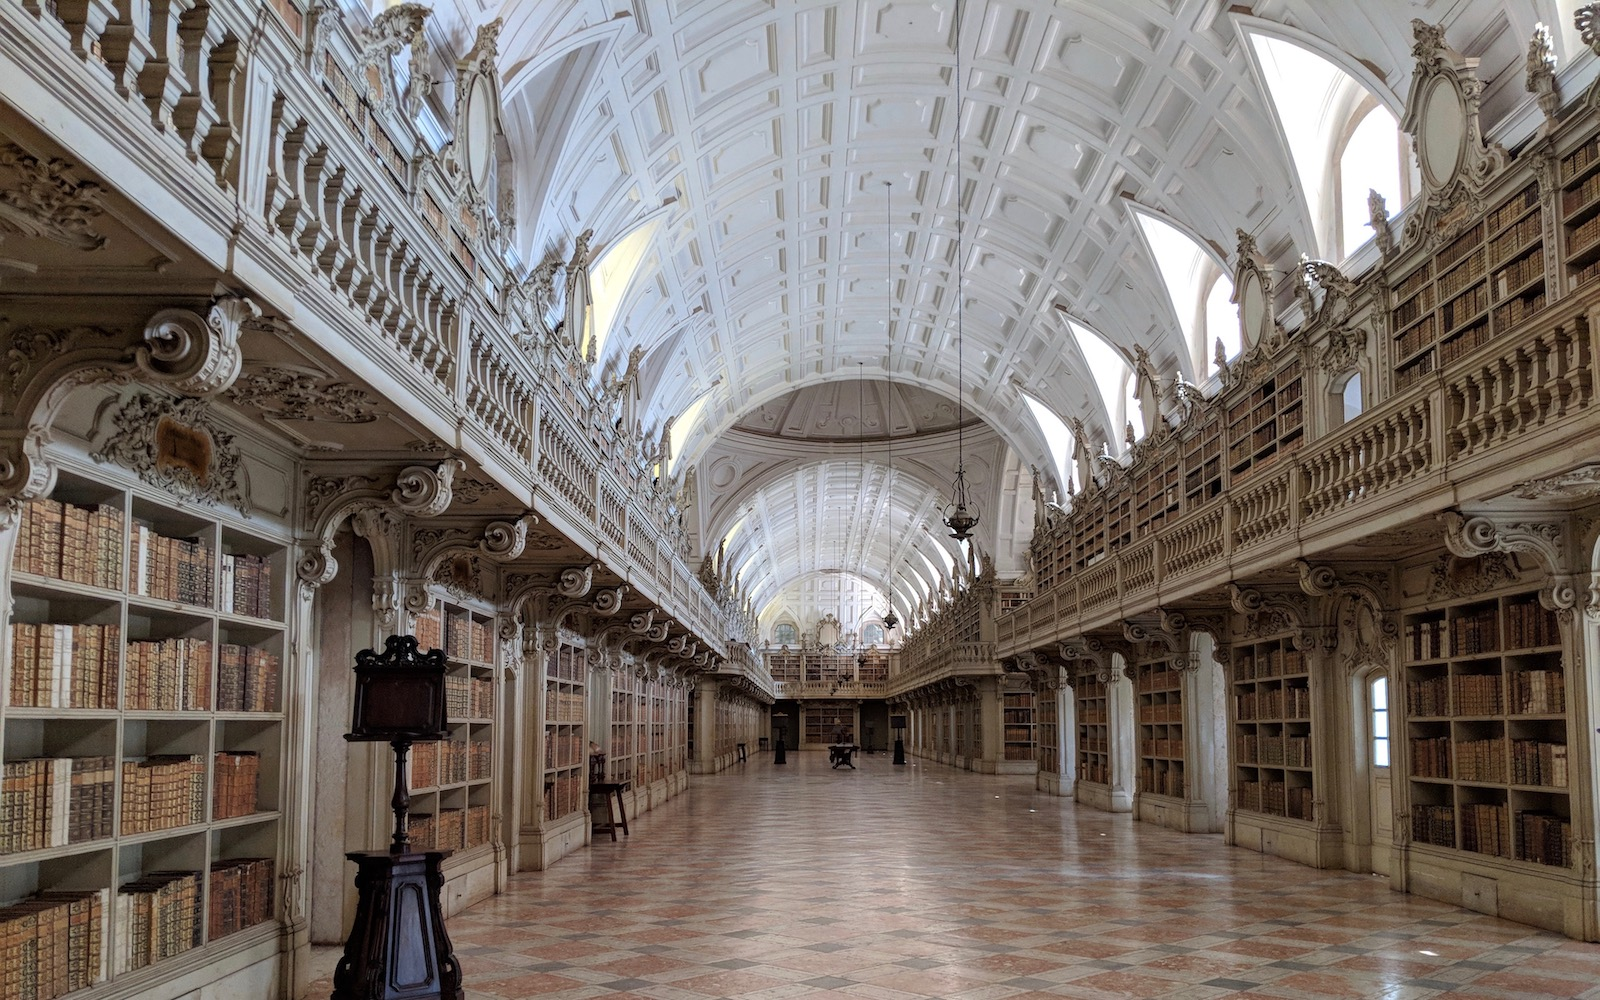 Mafra Palace Library in Portugal